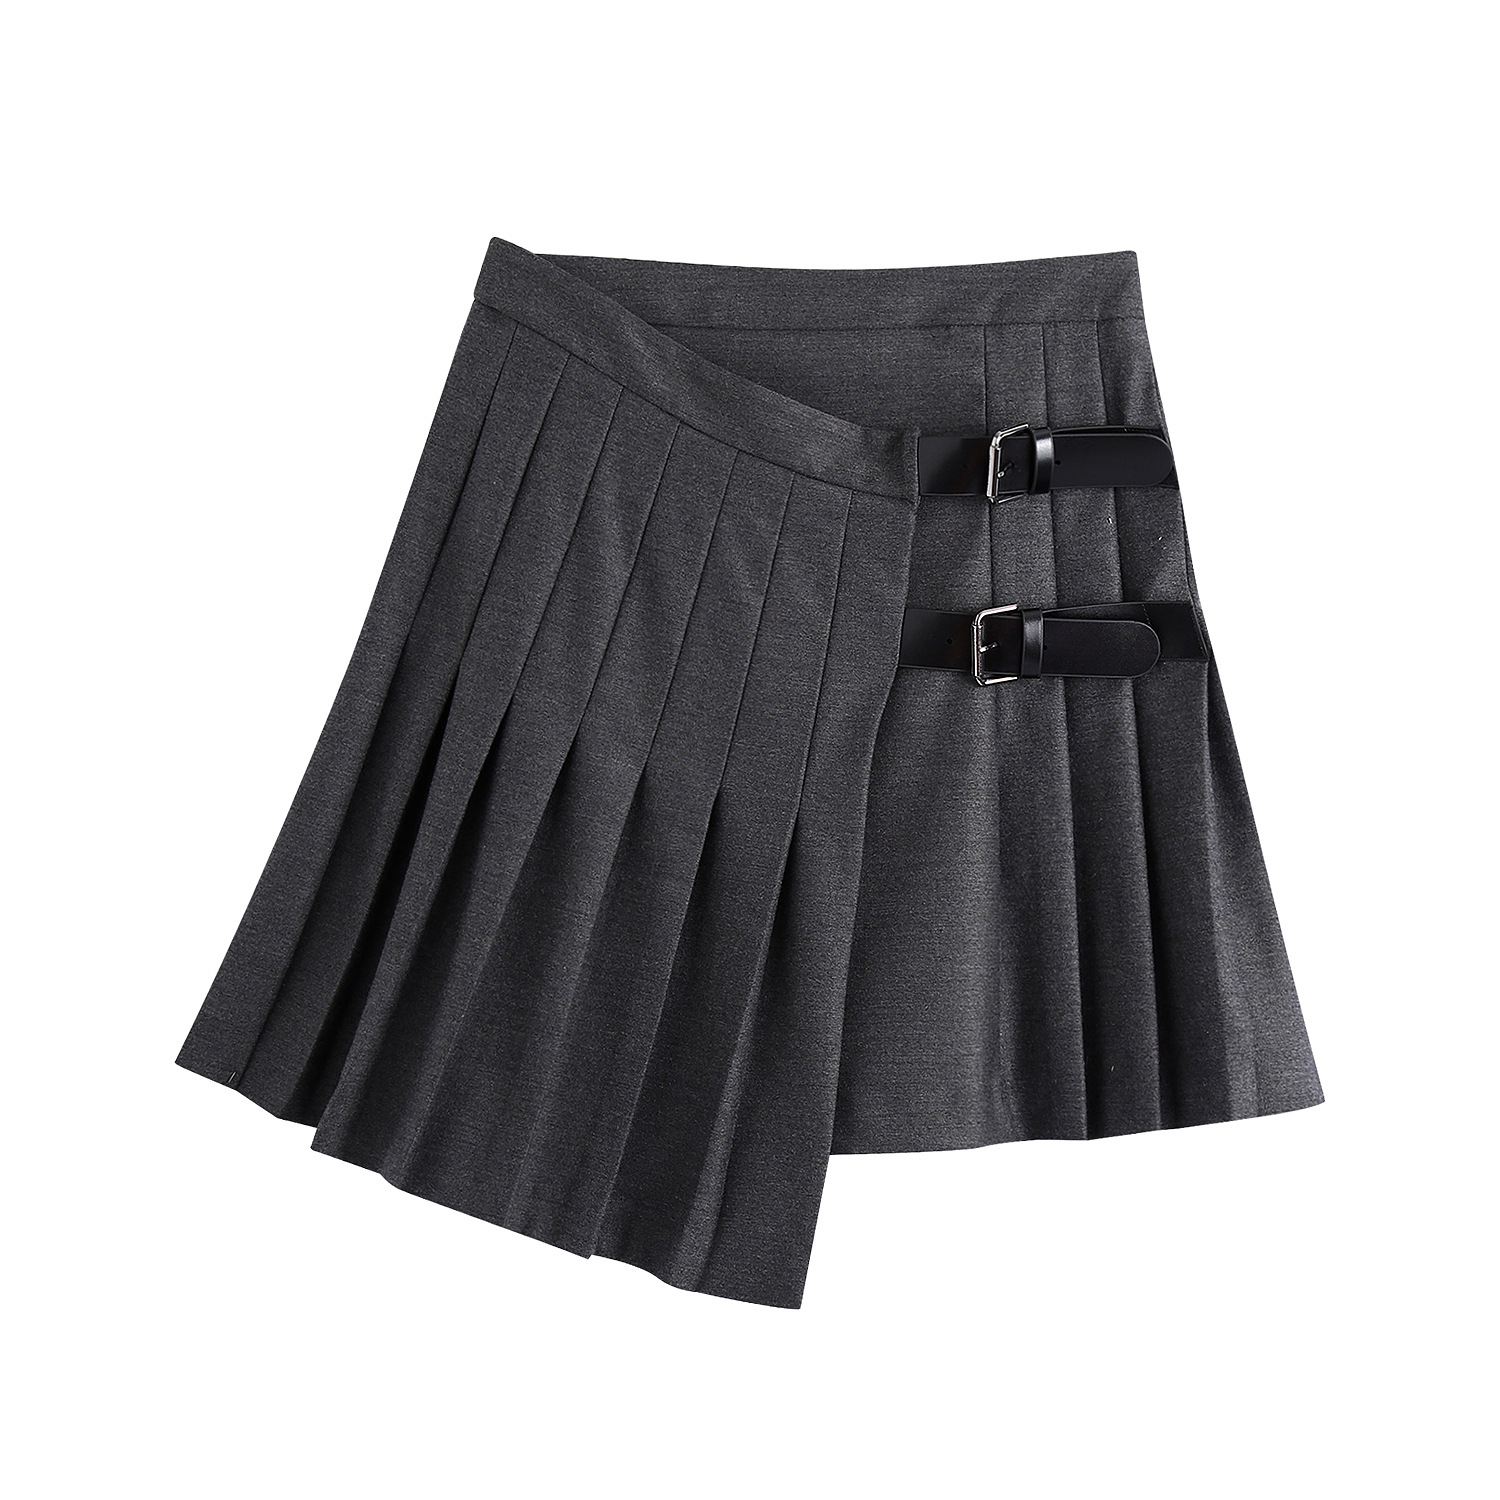 Popular in foreign trade autumn new European and American style wide pleated irregular fashion versatile mini skirt 4886264